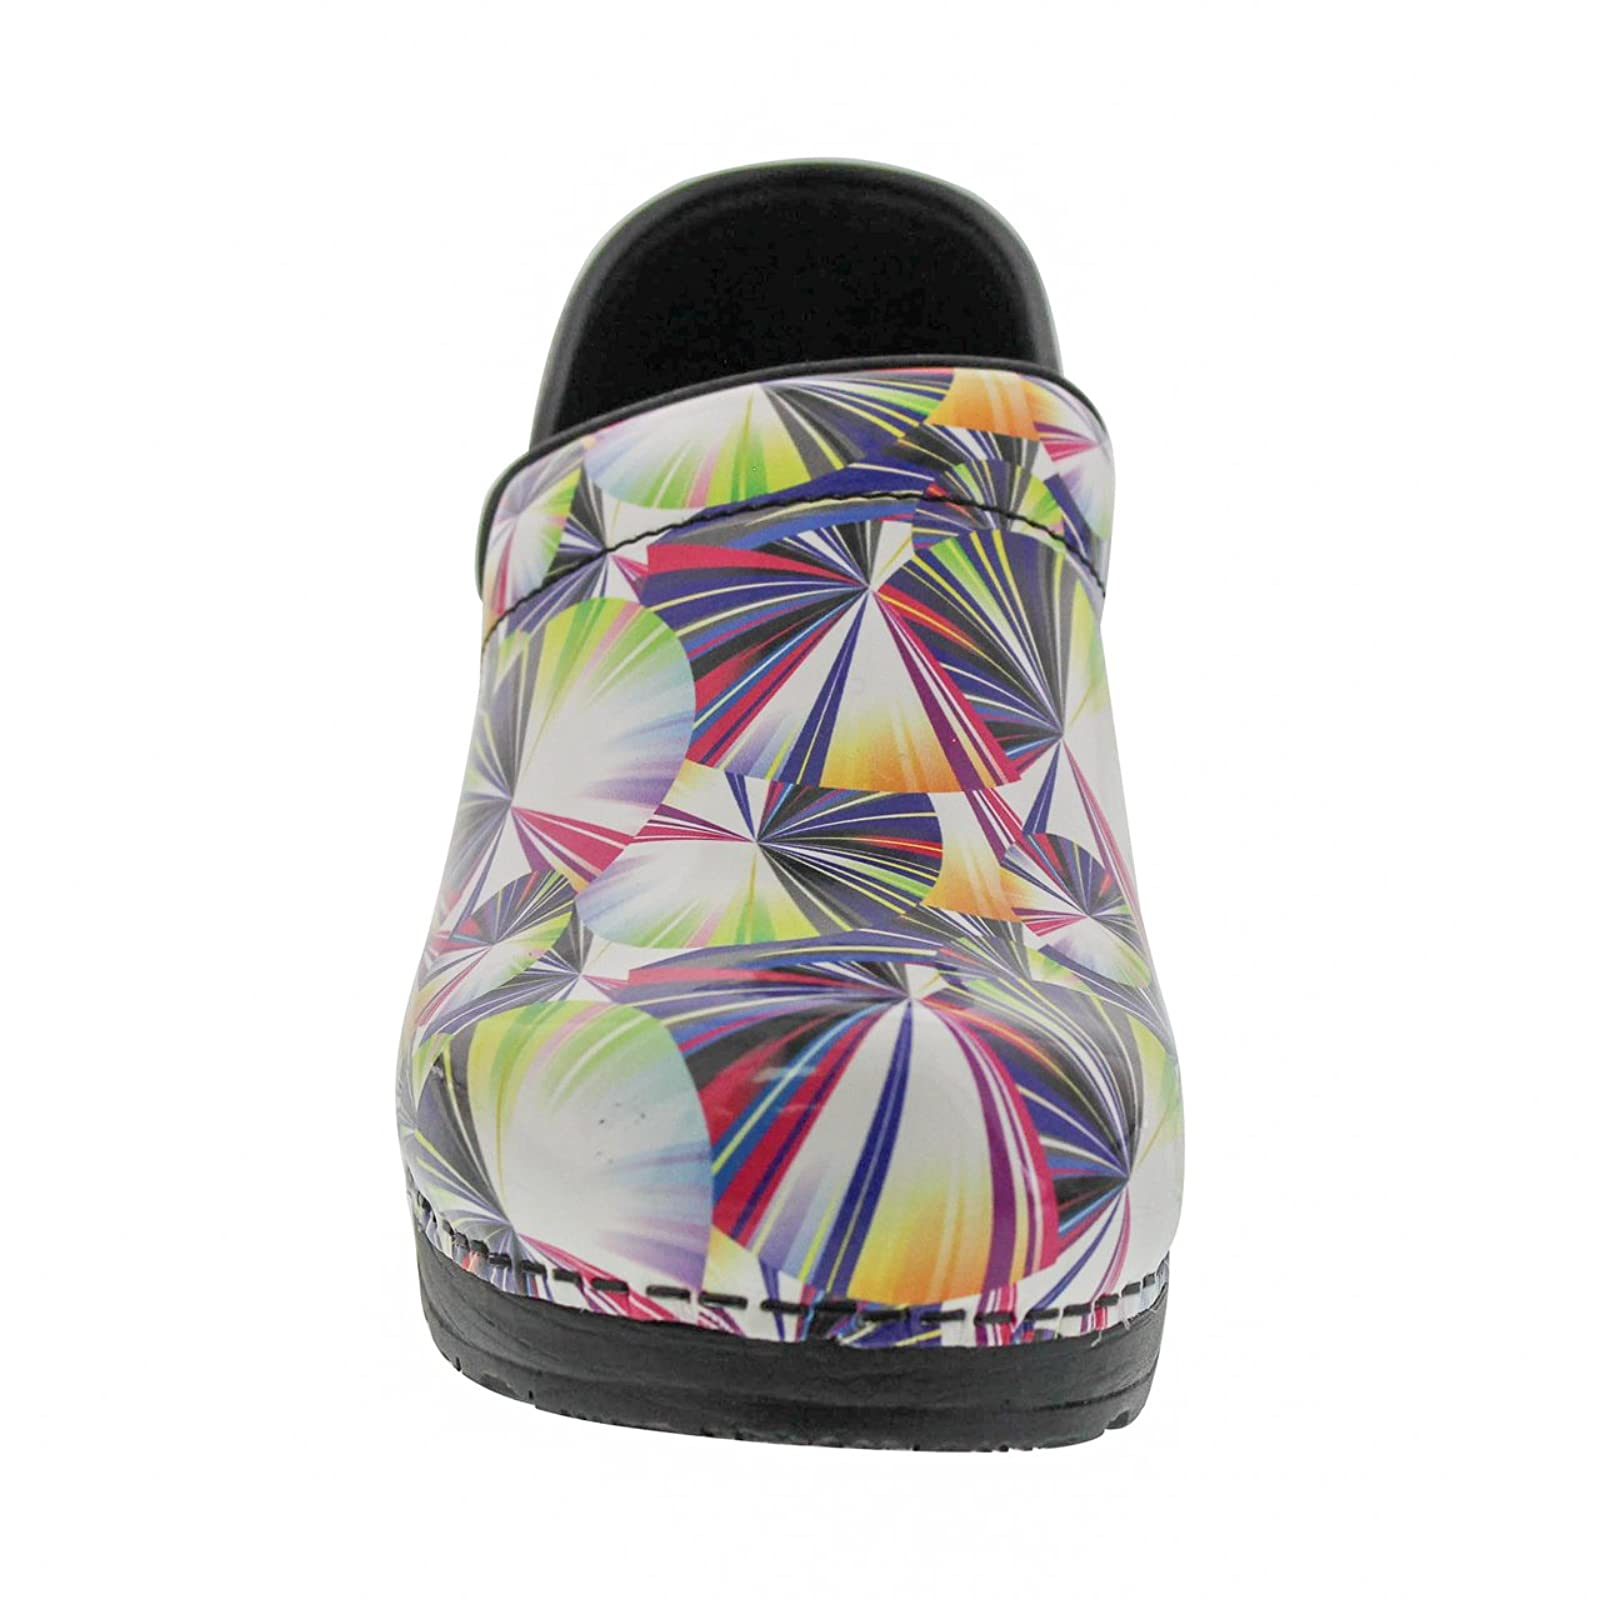 Sanita Women's Original Pro. Geo Clog 459156 Multi - 4